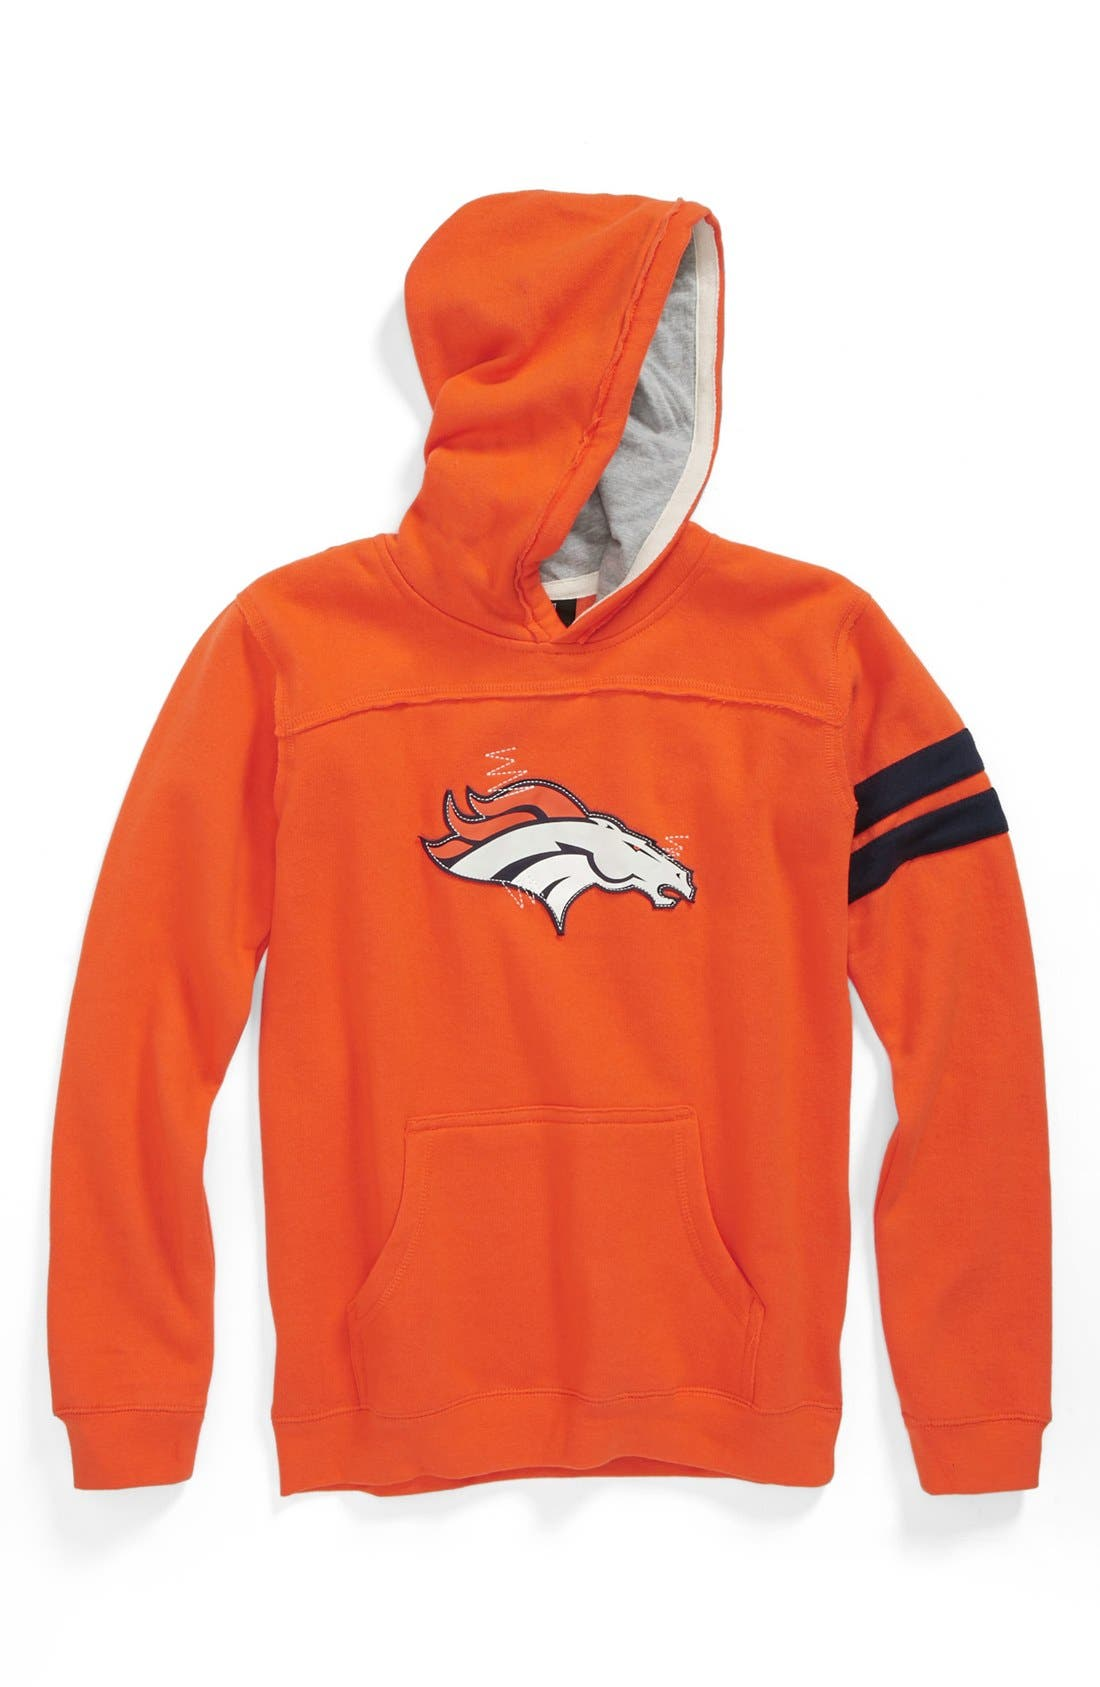 Alternate Image 1 Selected - Outerstuff 'Denver Broncos' Hoodie (Big Boys)